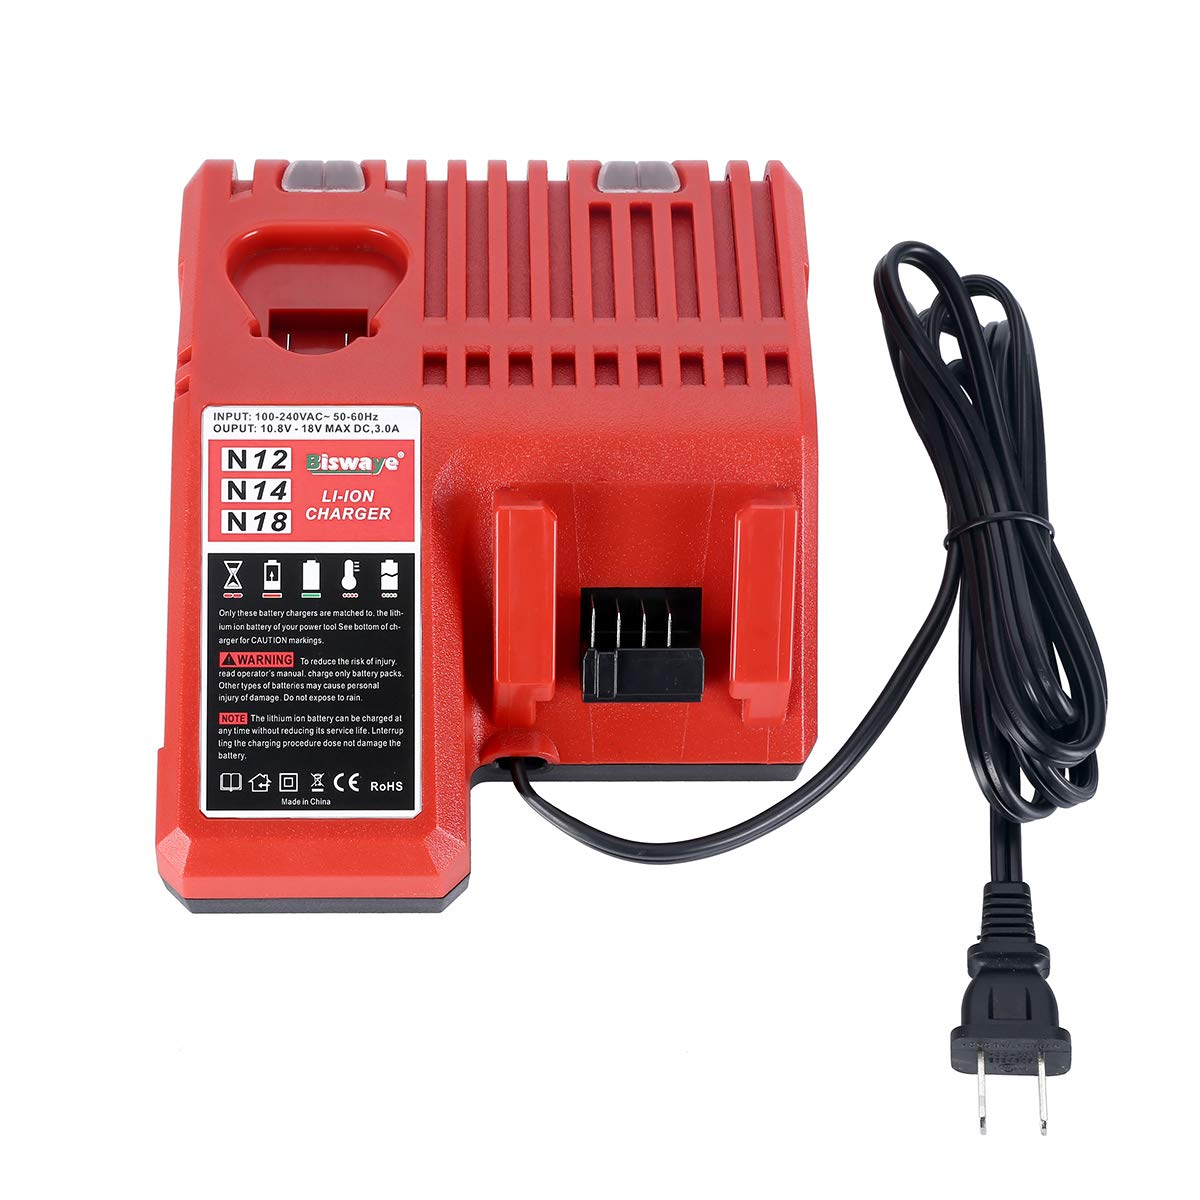 Biswaye M12 & M18 Multi-Voltage Battery Charger 48-59-1812 Compatible with Milwaukee M12 M14 M18 Lithium Battery 12V-18V 48-11-2412 48-11-2401 48-11-2440 48-11-1862 48-11-1850 48-11-1852